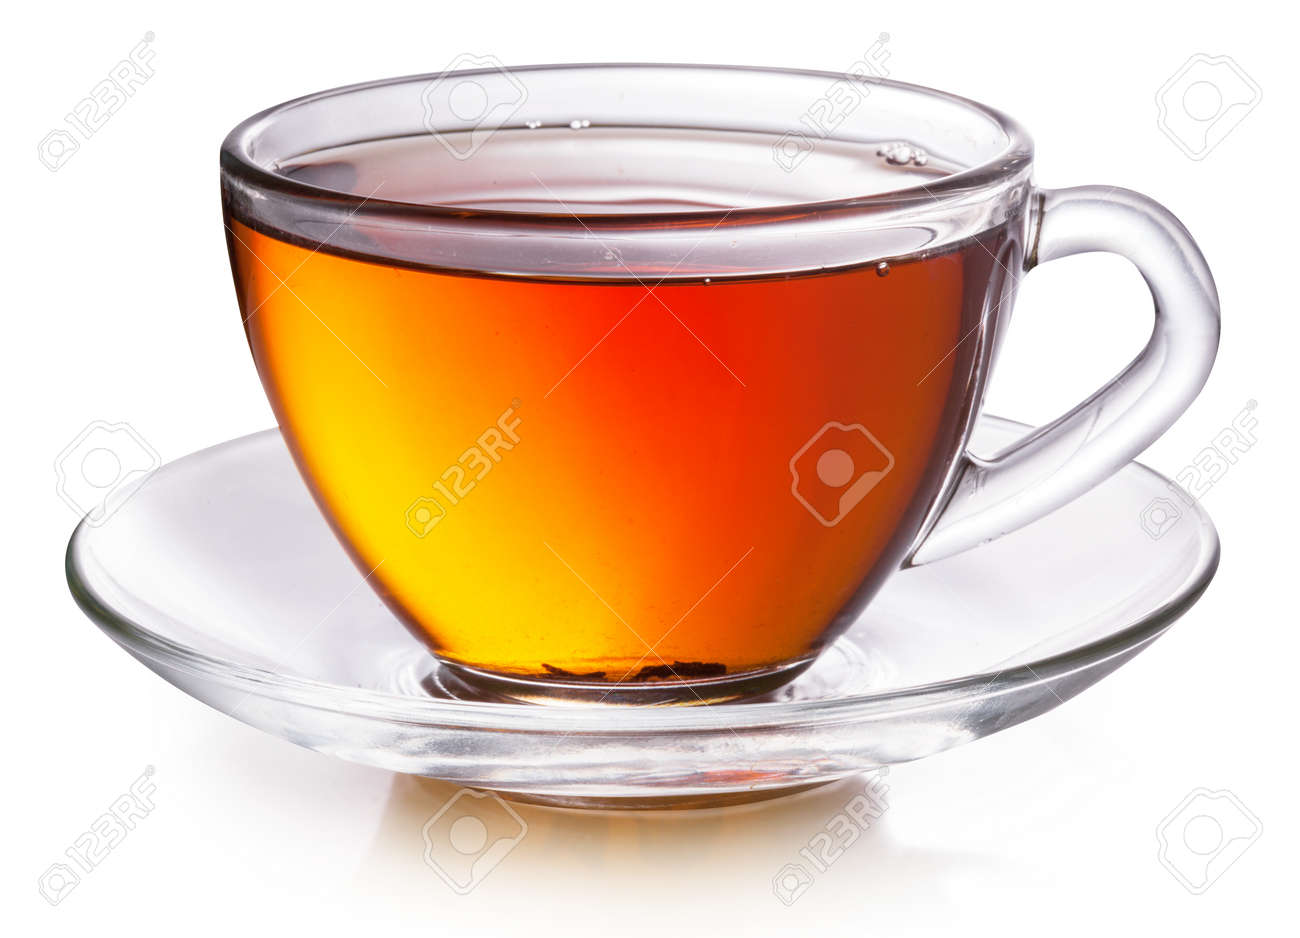 Glass cup with black tea isolated on a white background. - 147069177